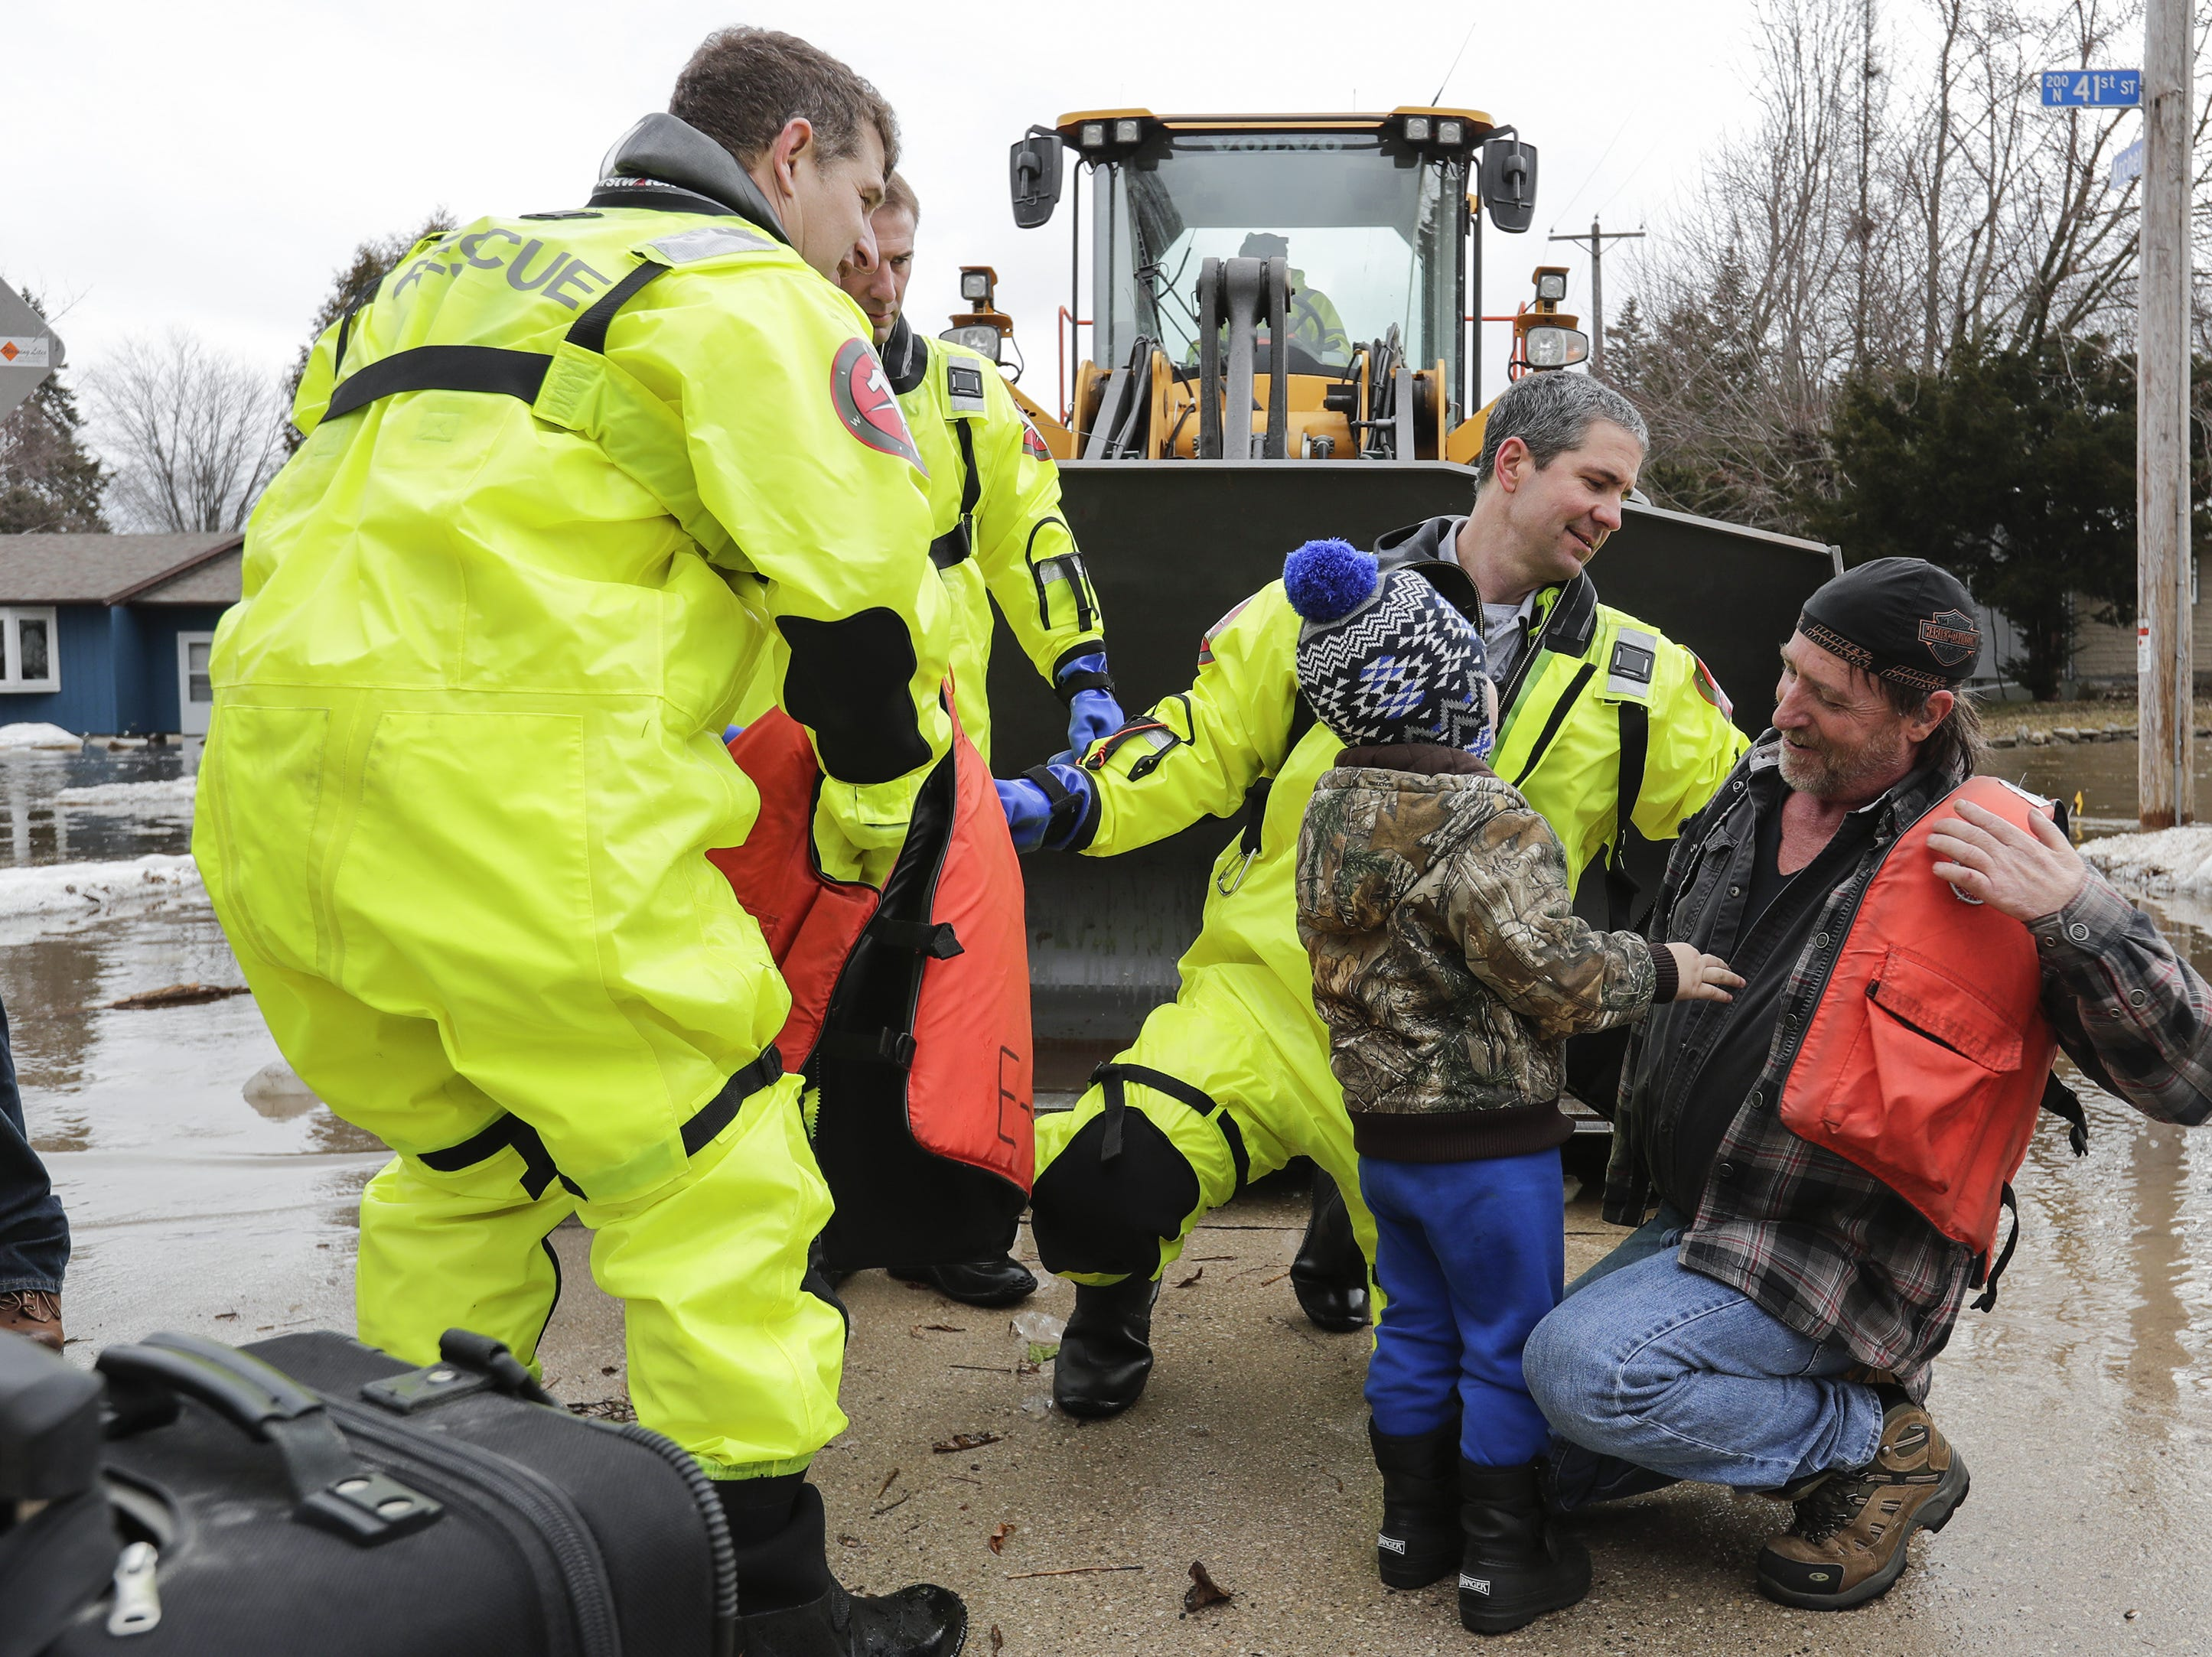 Firefighter Garrett Grissom helps Keith Pfeifer with his life vest after evacuating from 41st and Archer March 21 in Manitowoc.